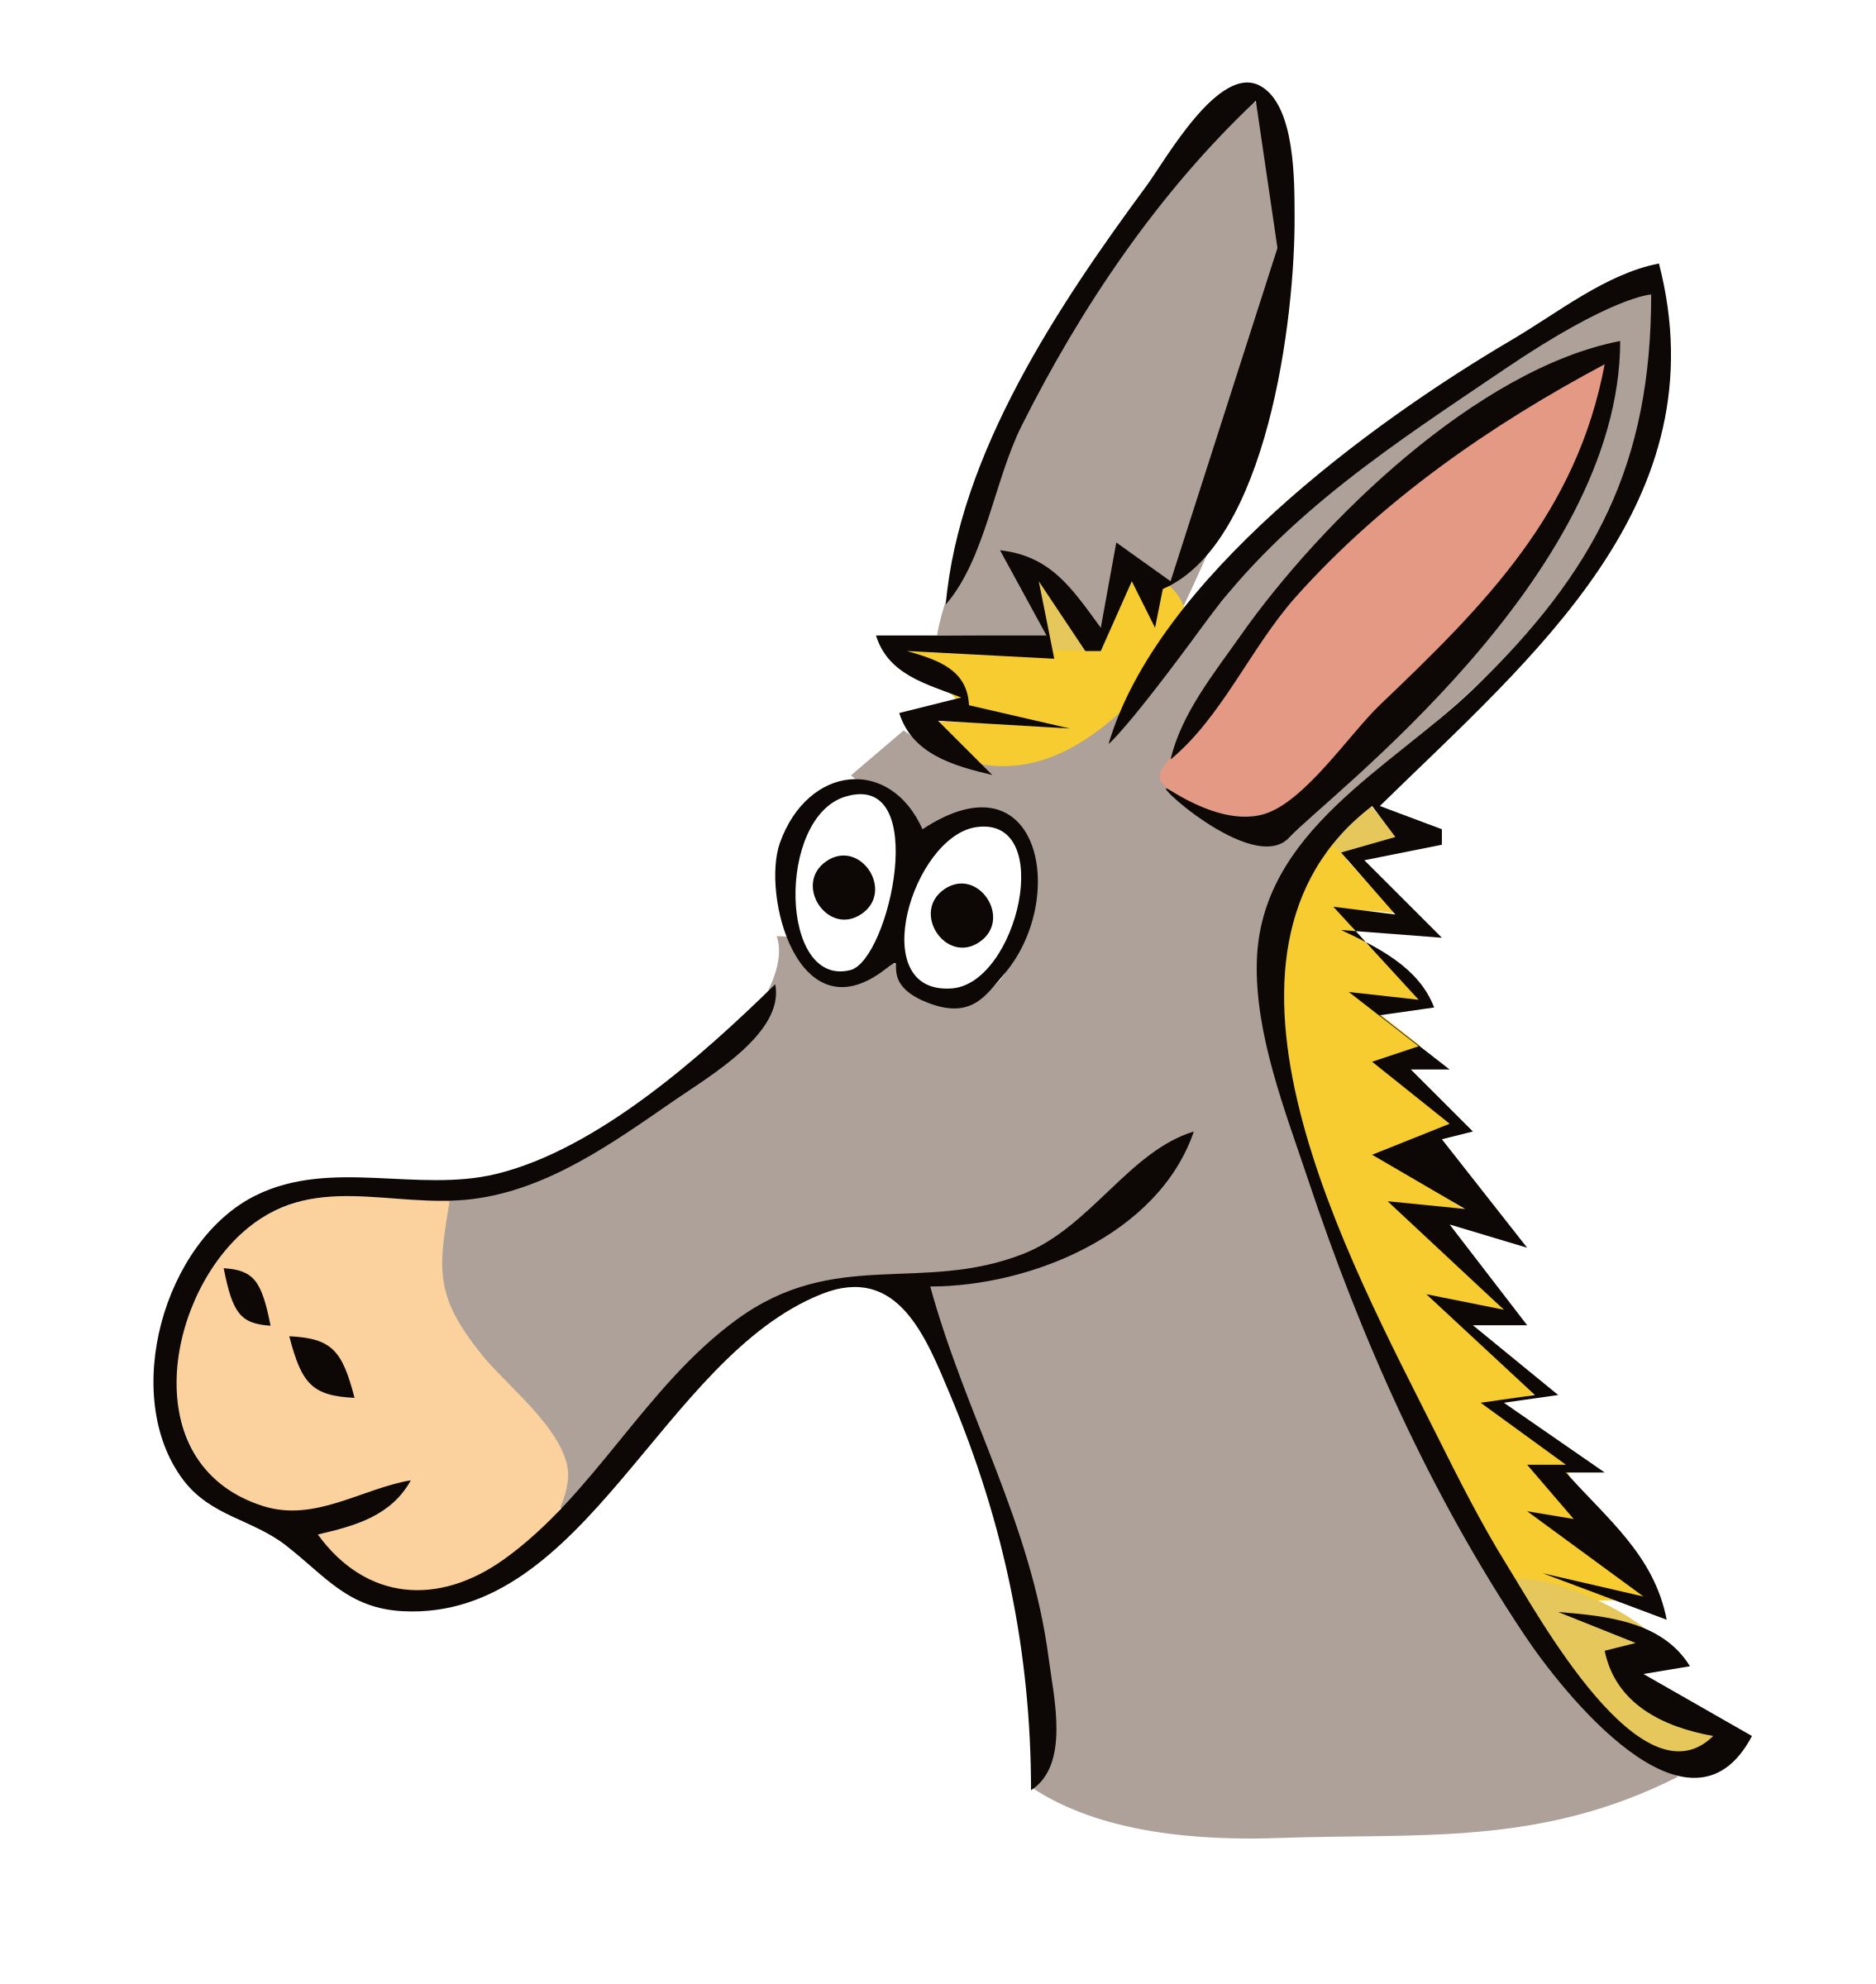 drawn donkey by frankes